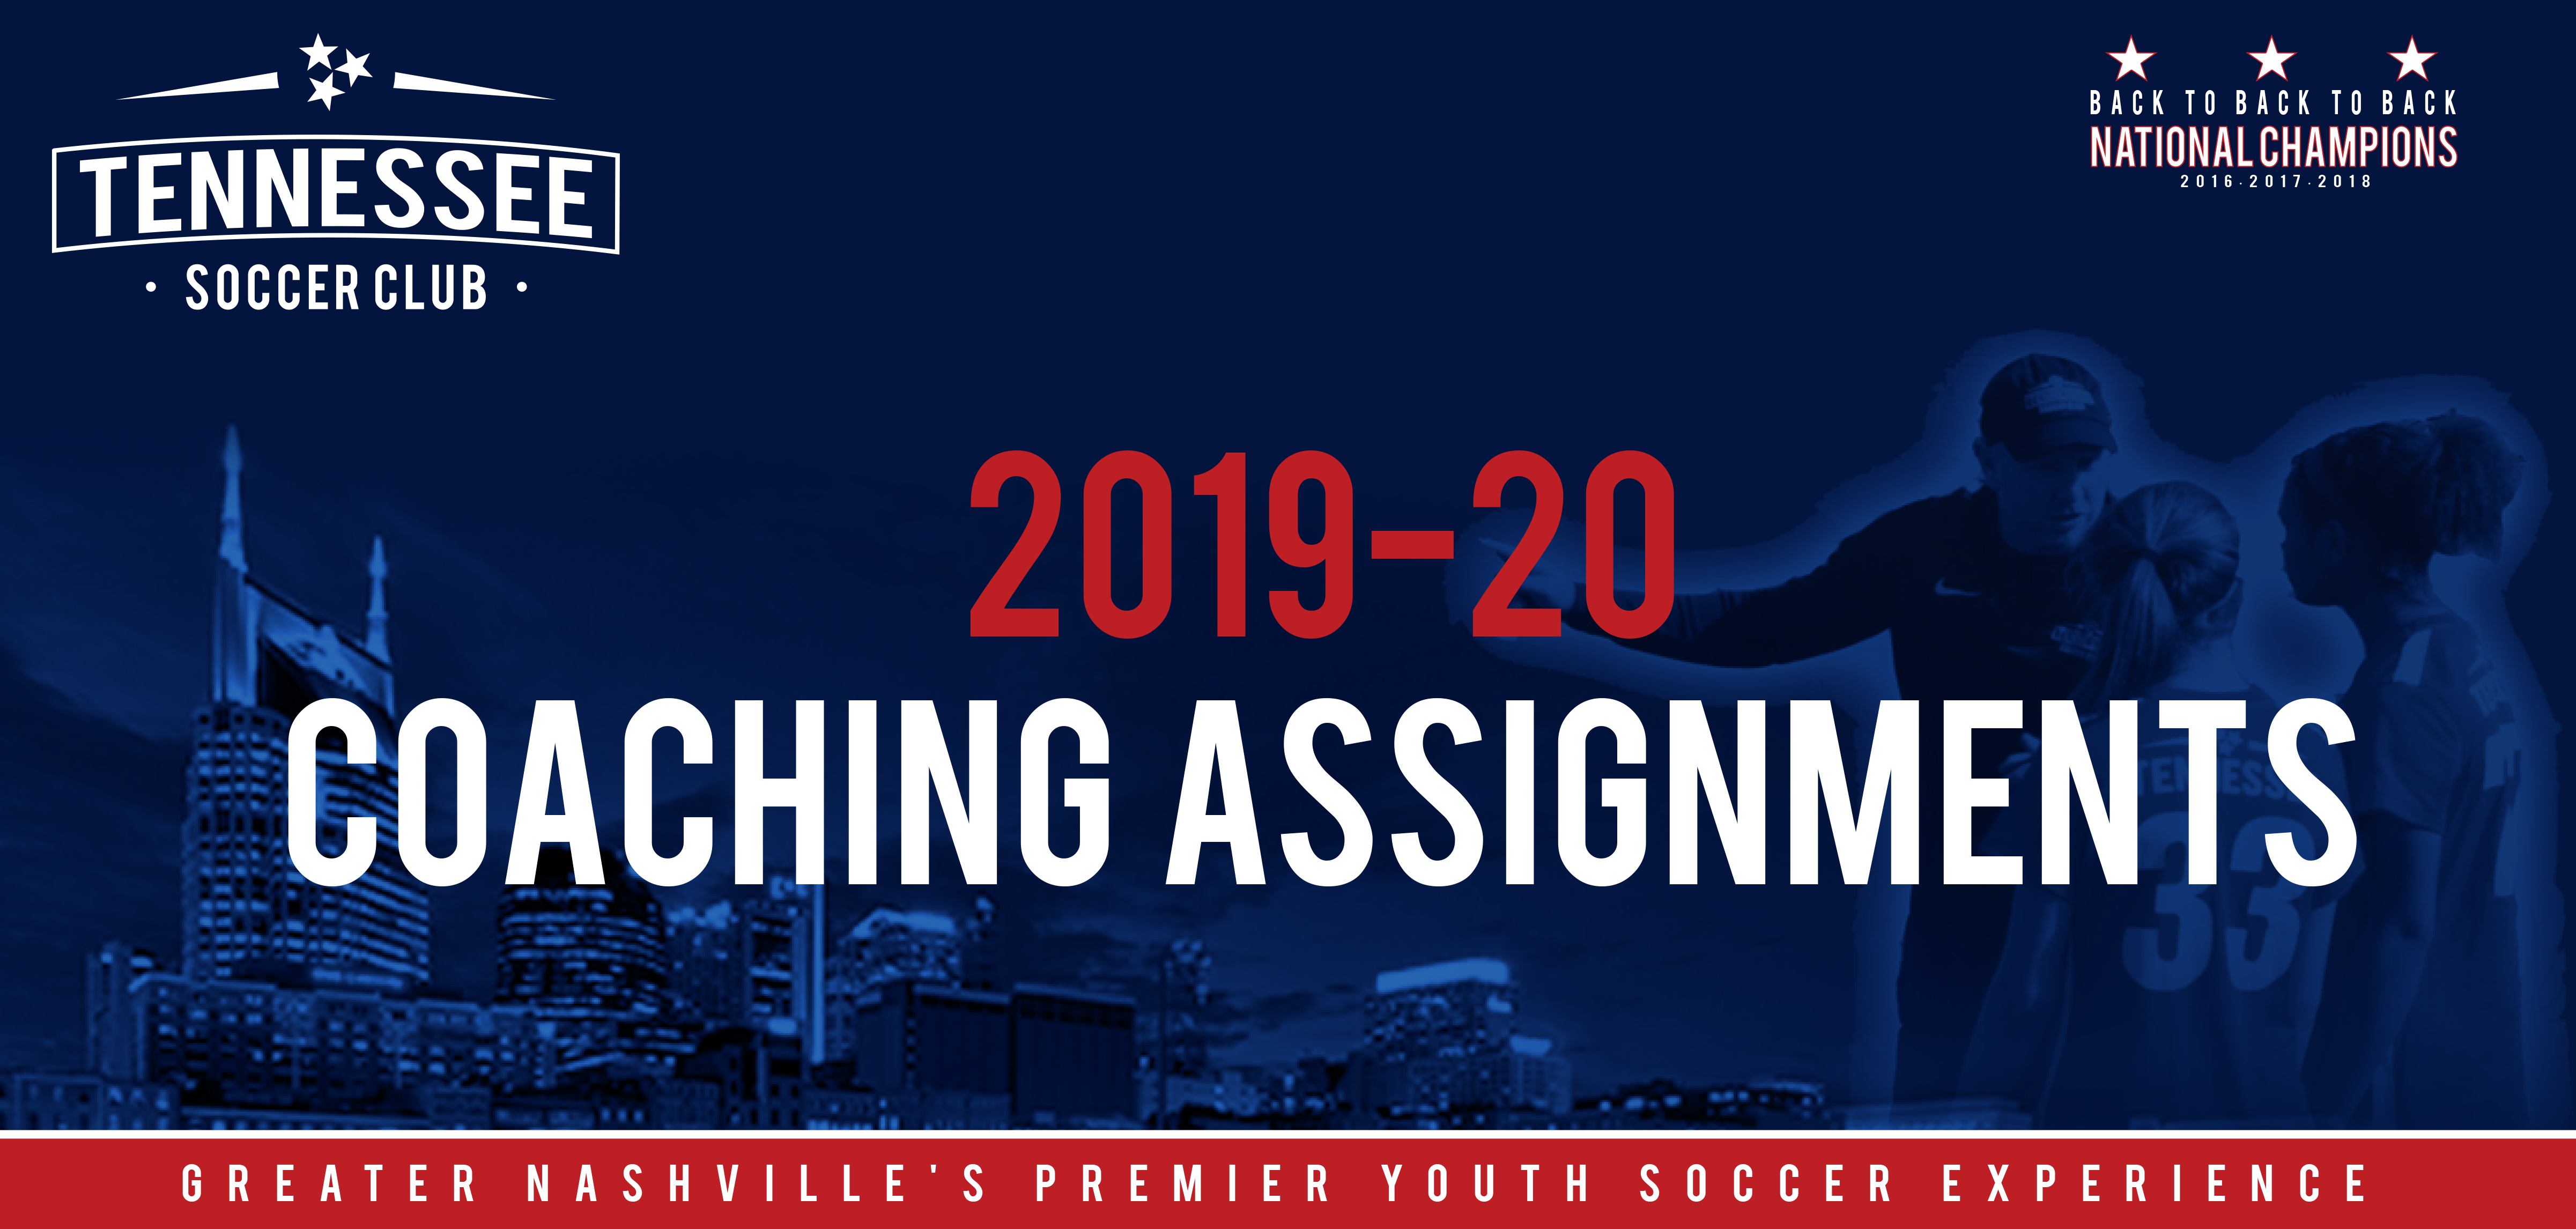 2019-20 Coaching Assignments Released